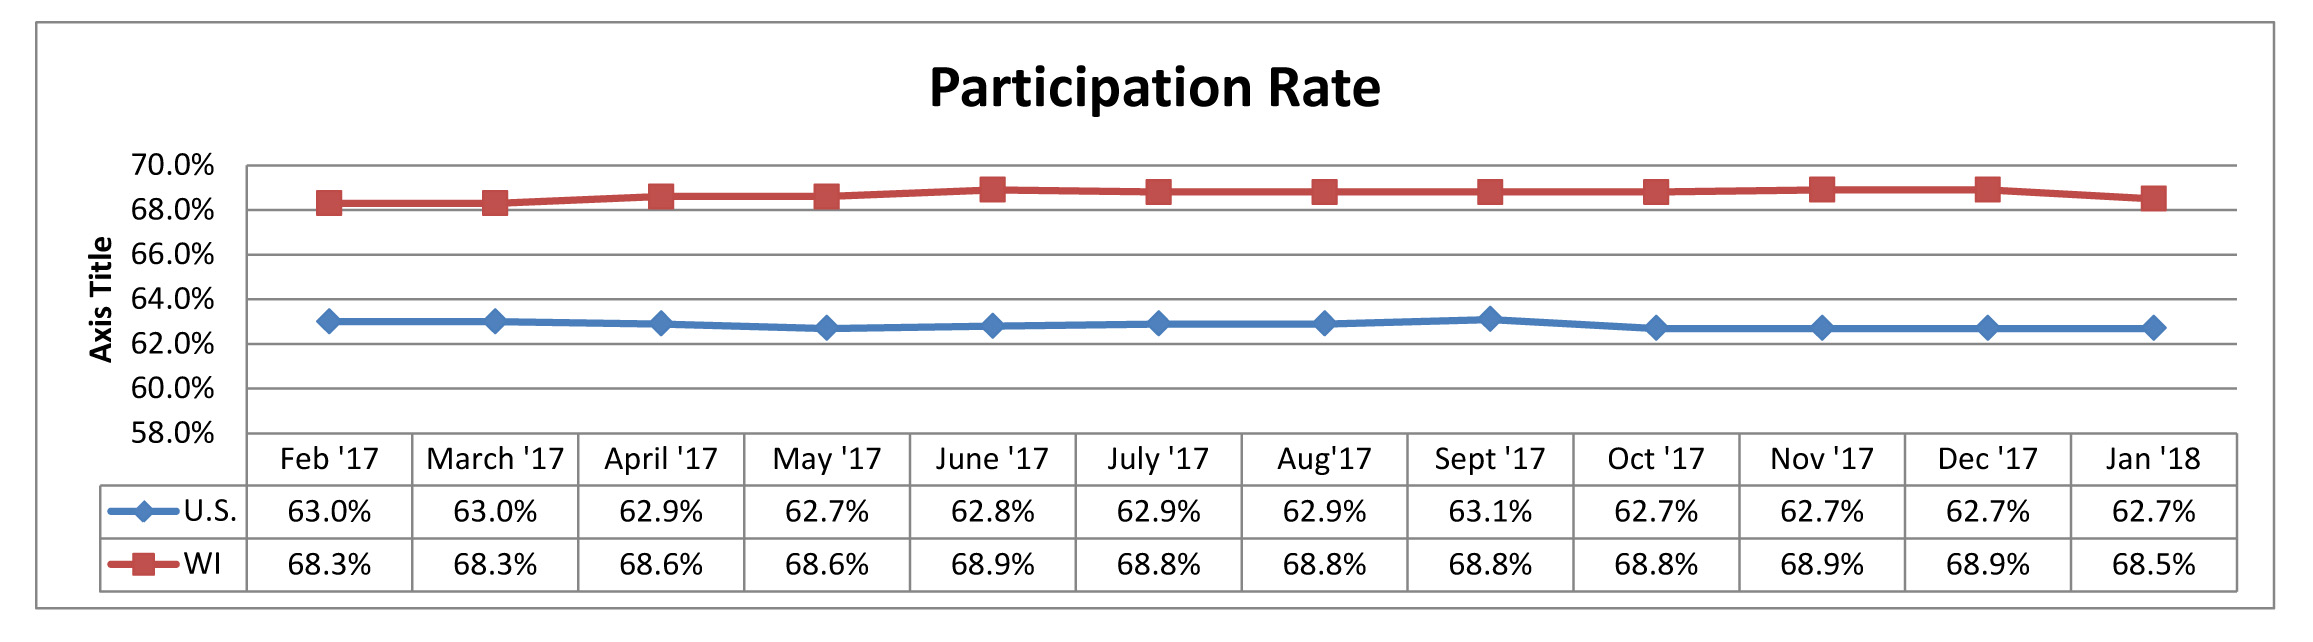 January 2018 Participation Rate